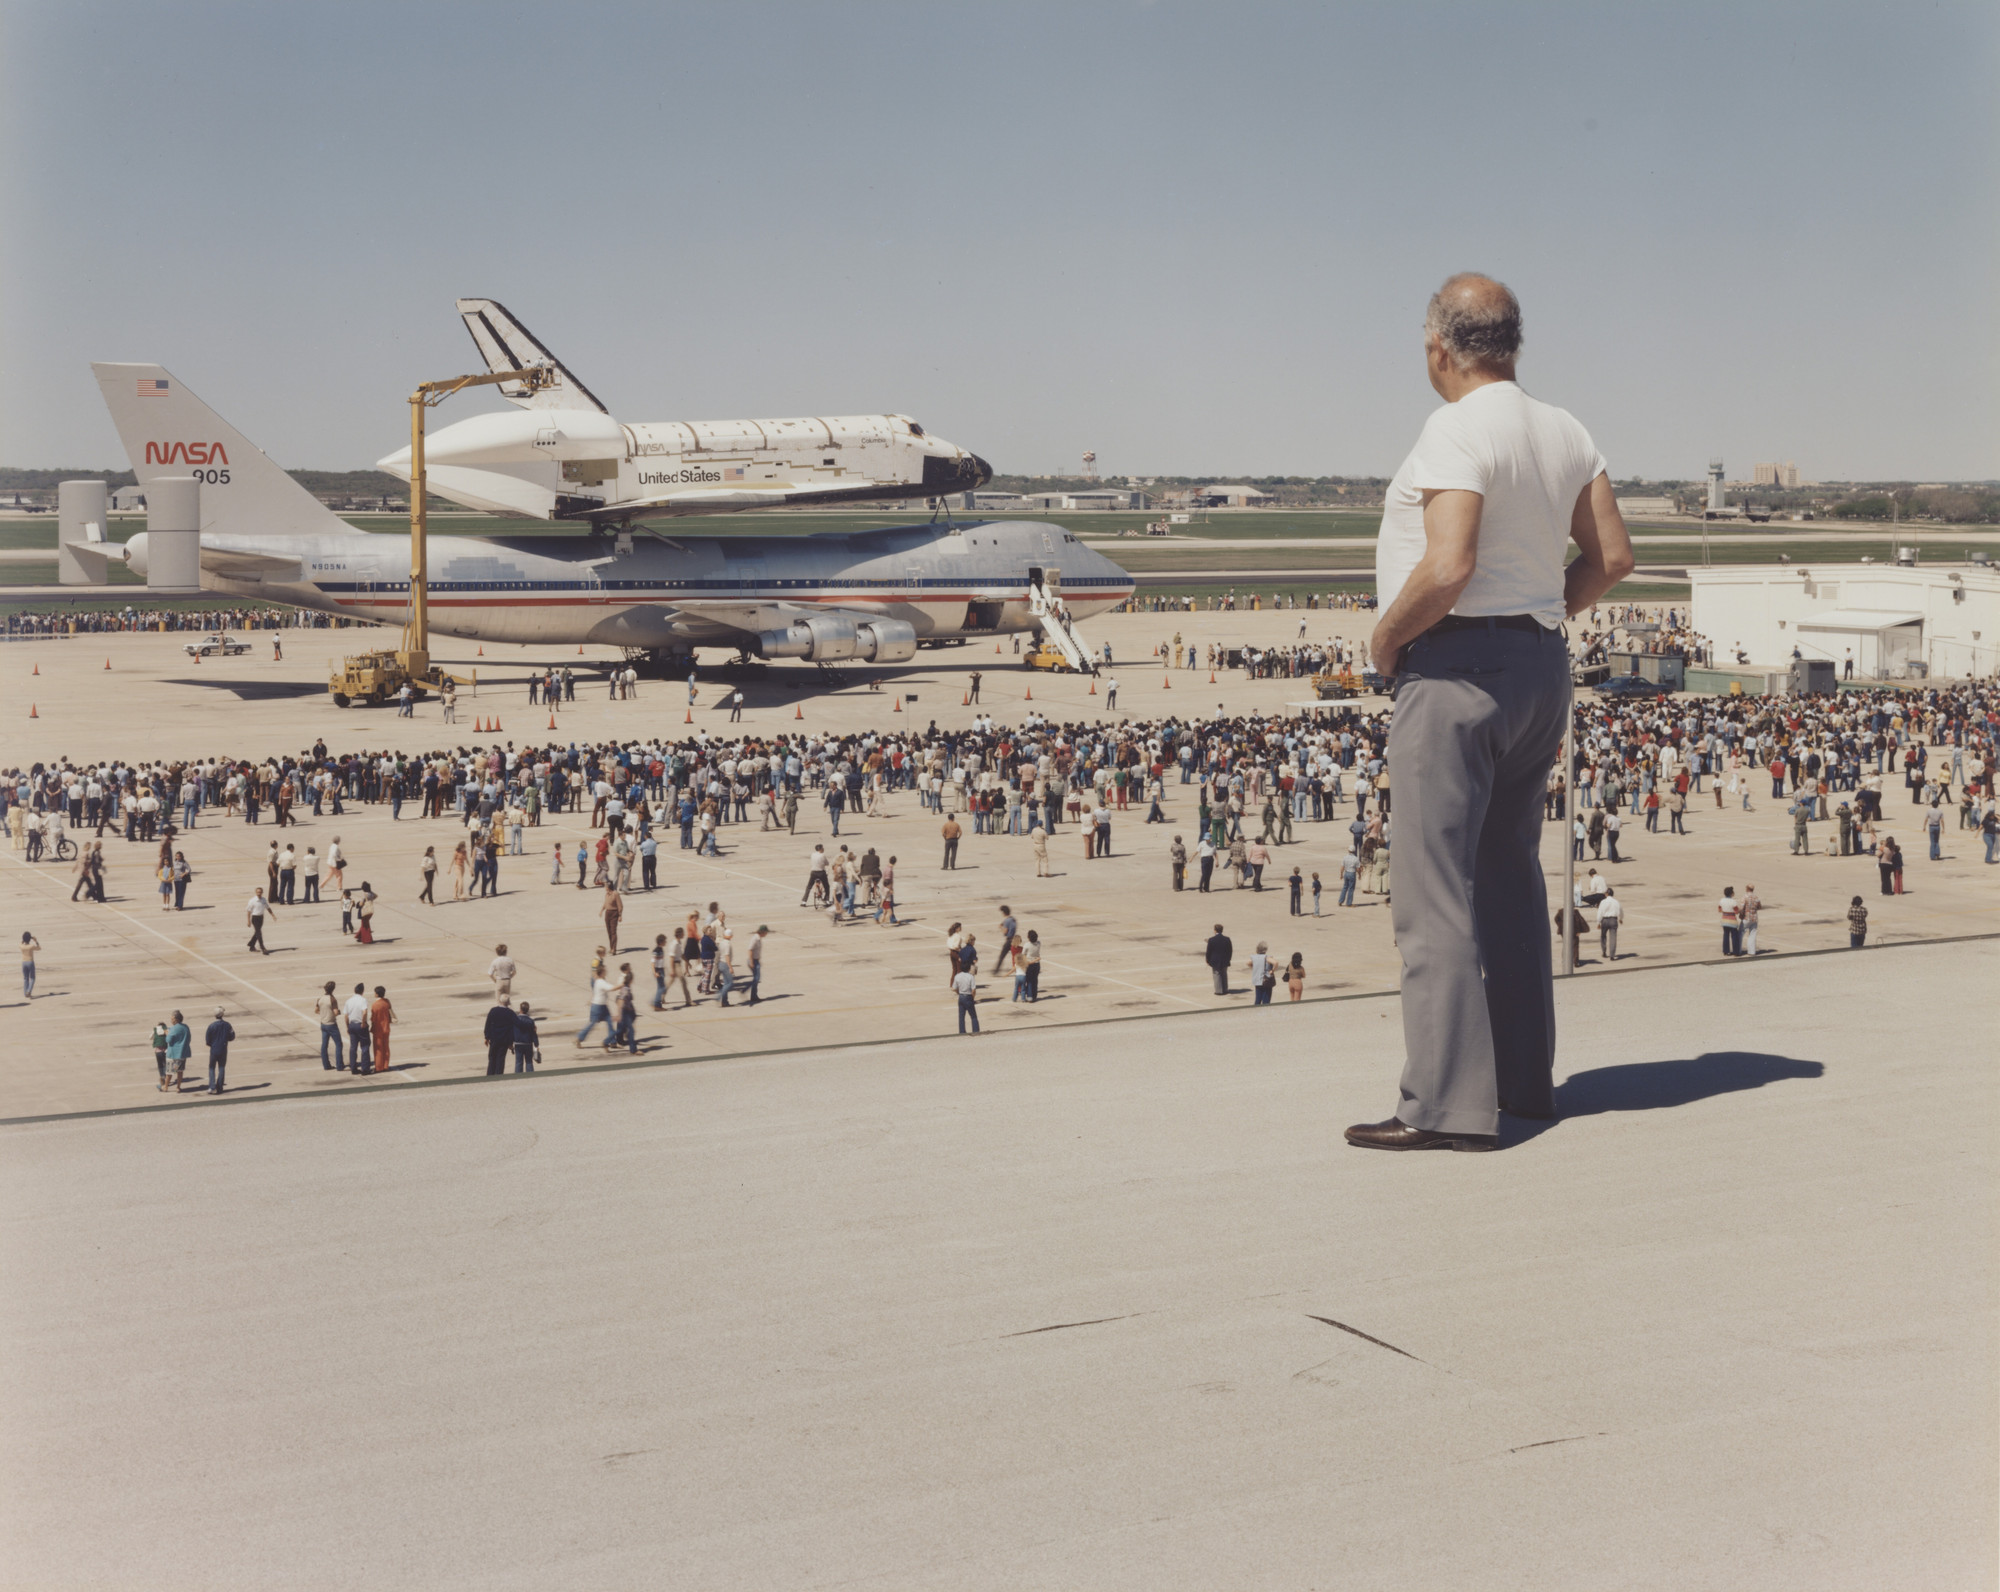 Joel Sternfeld. The Space Shuttle Columbia Lands at Kelly Lackland Air Force Base, San Antonio, Texas. March 1979